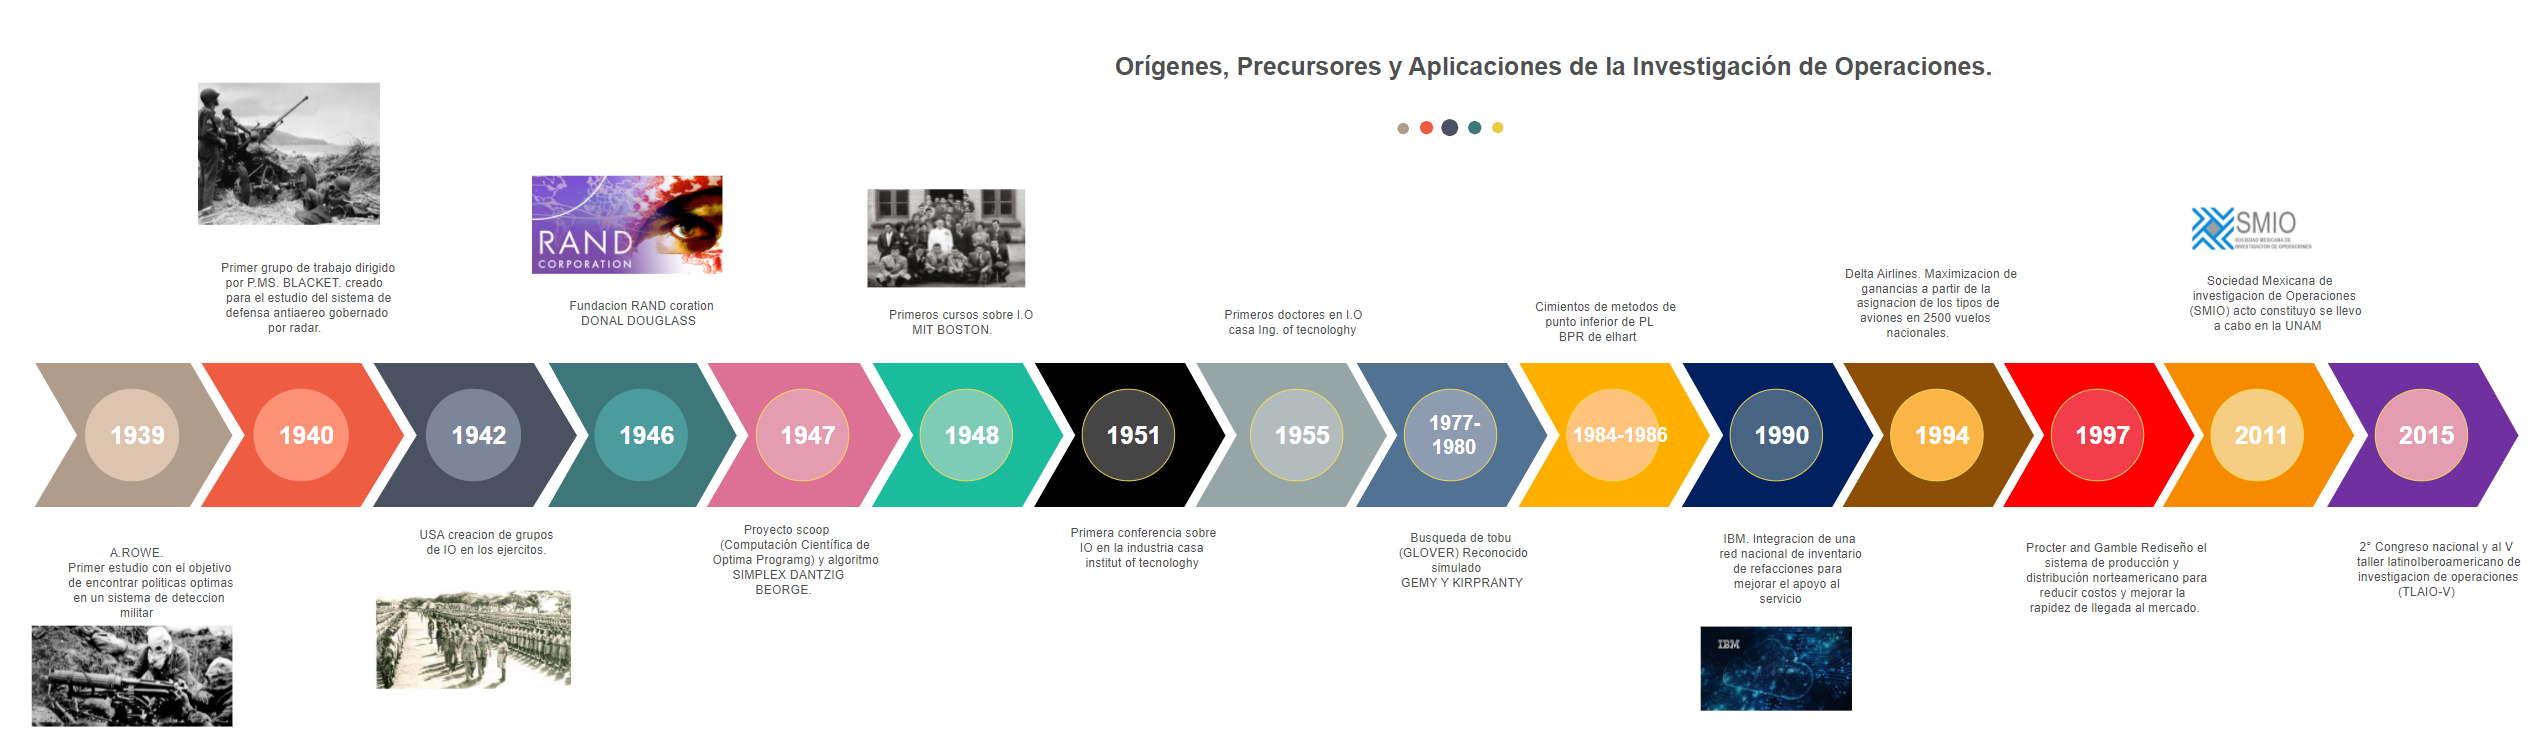 Operations Investigation Timeline